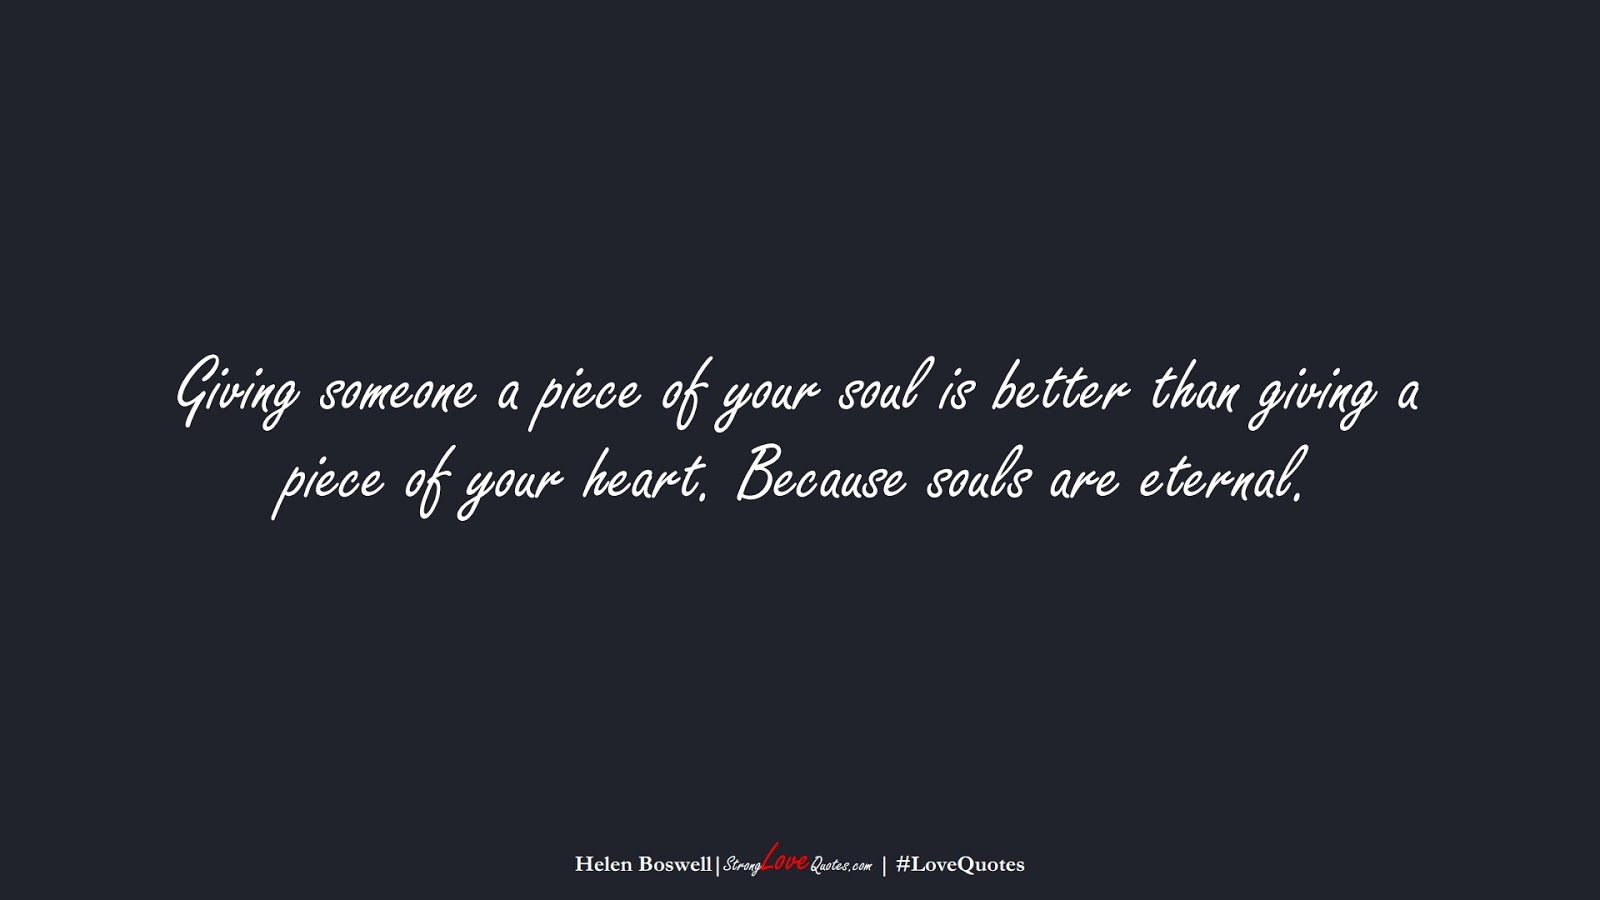 Giving someone a piece of your soul is better than giving a piece of your heart. Because souls are eternal. (Helen Boswell);  #LoveQuotes